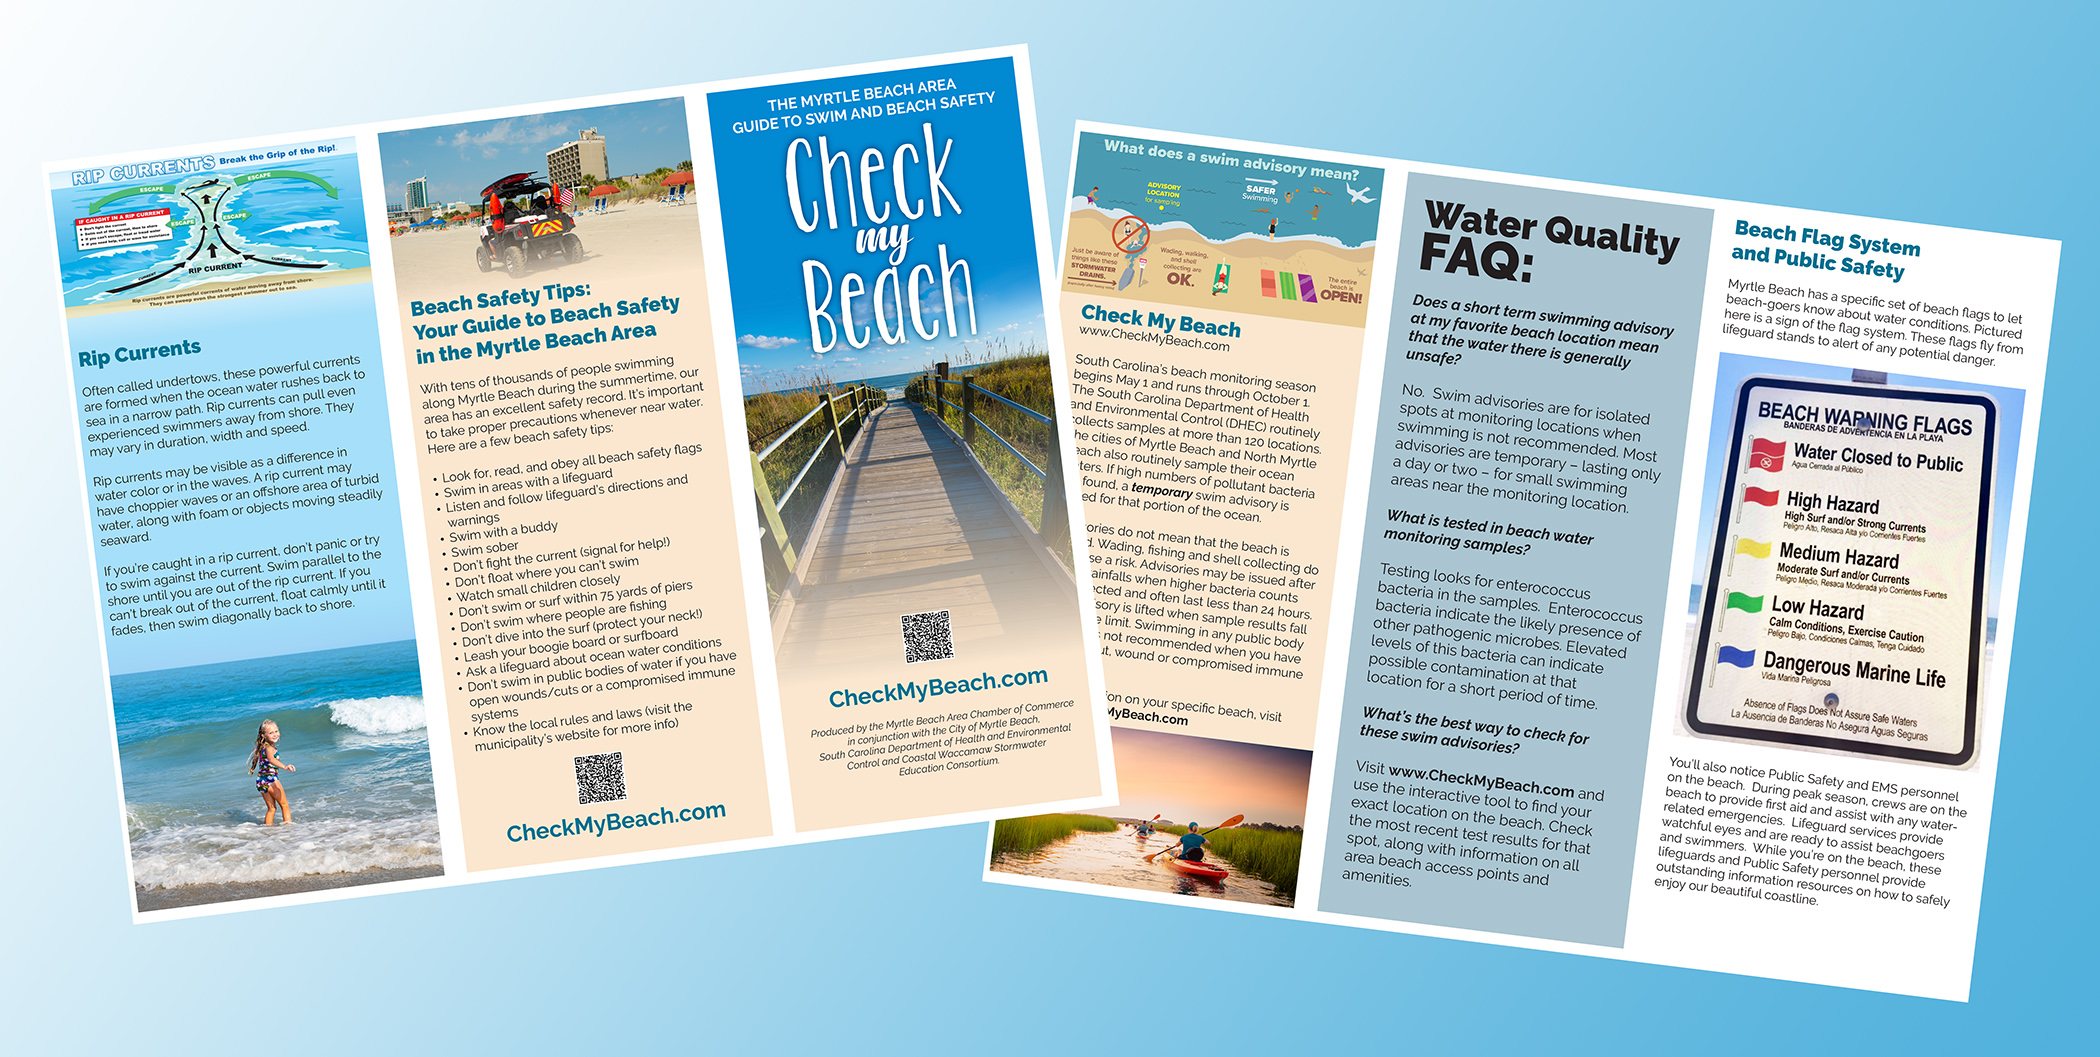 Check My Beach - Myrtle Beach Area Guide to Swim and Beach Safety